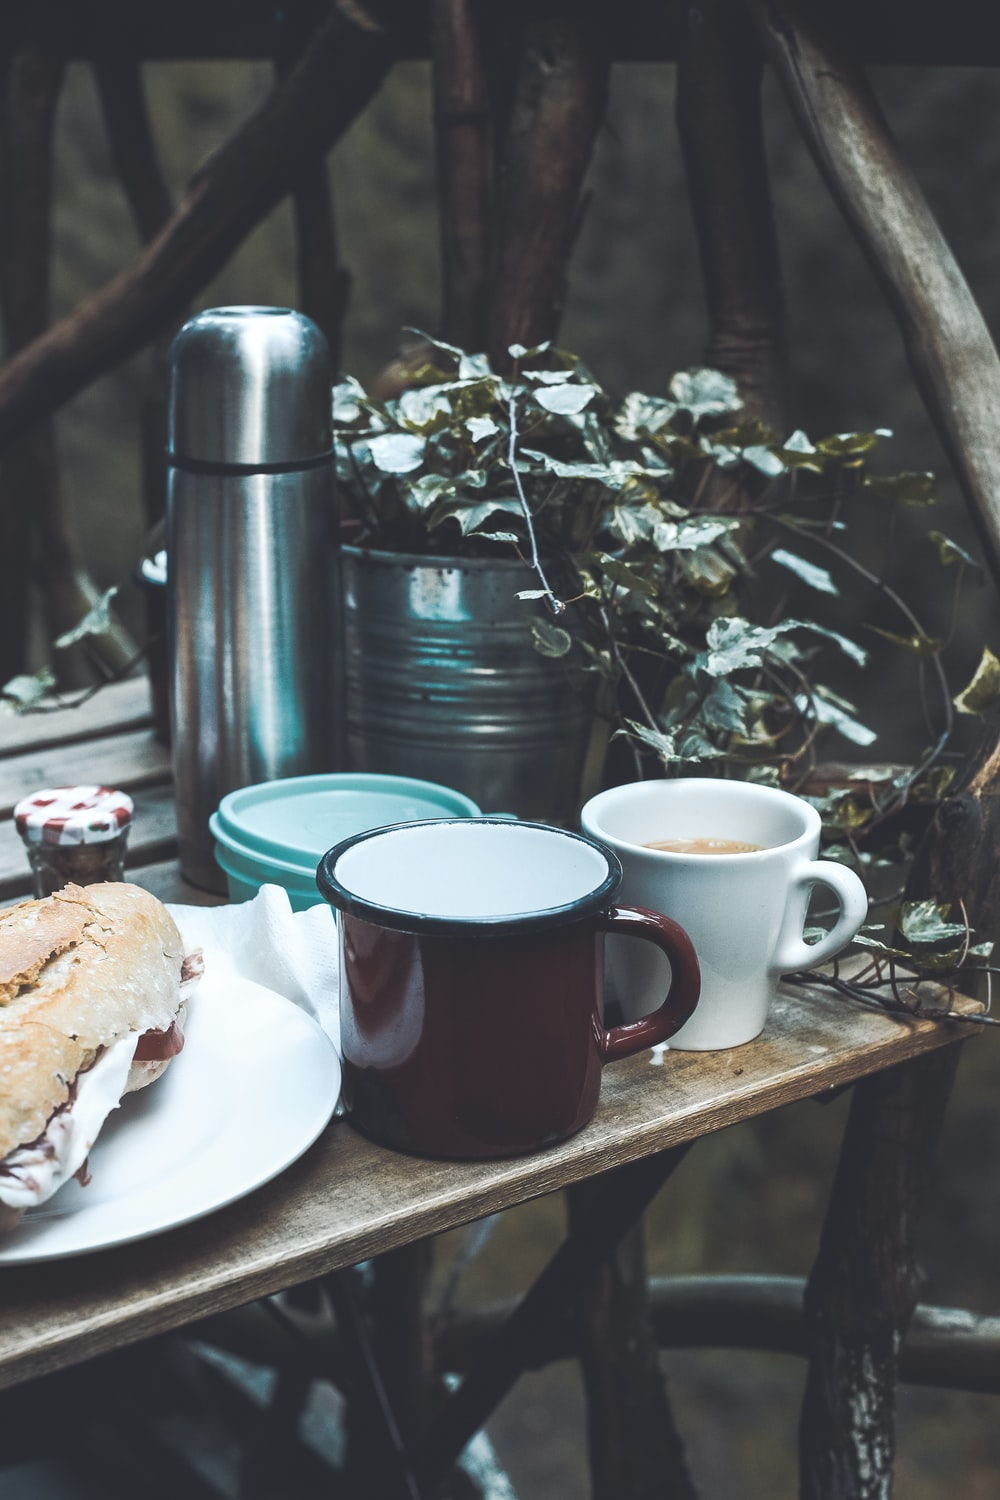 mugs beside plate with bread on table